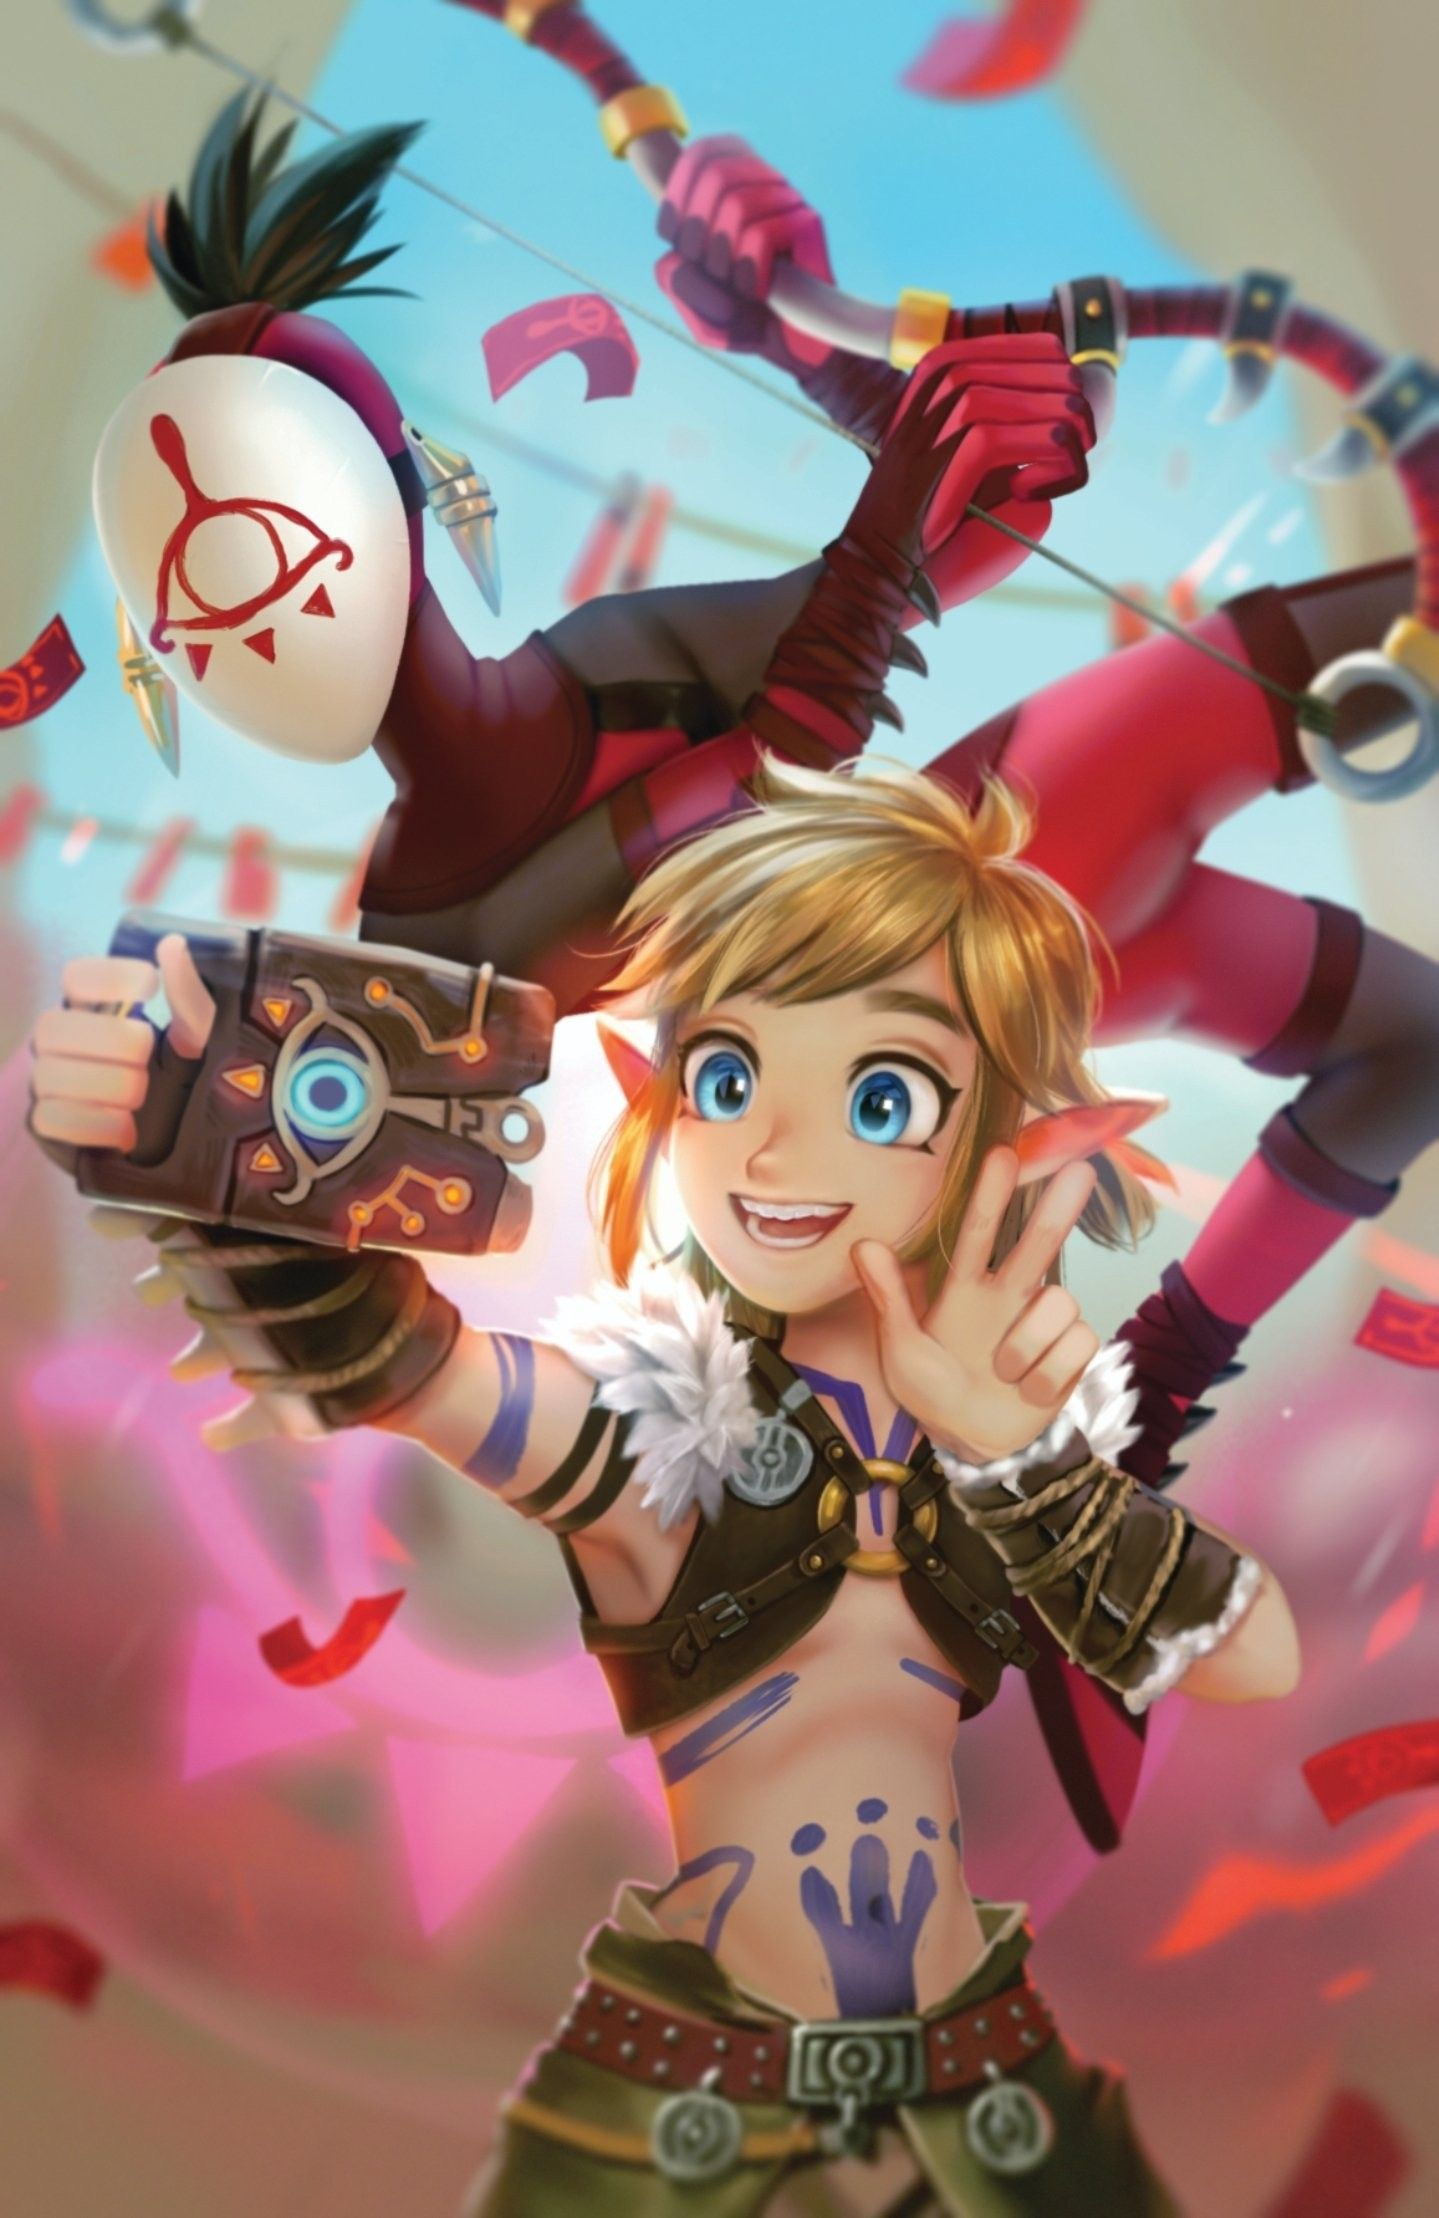 Legend Of Zelda Breath Of The Wild Art A Link Selfie With Yiga Photobomb Botw Miesmud The Legend Of Zelda Die Legende Von Zelda Legend Of Zelda